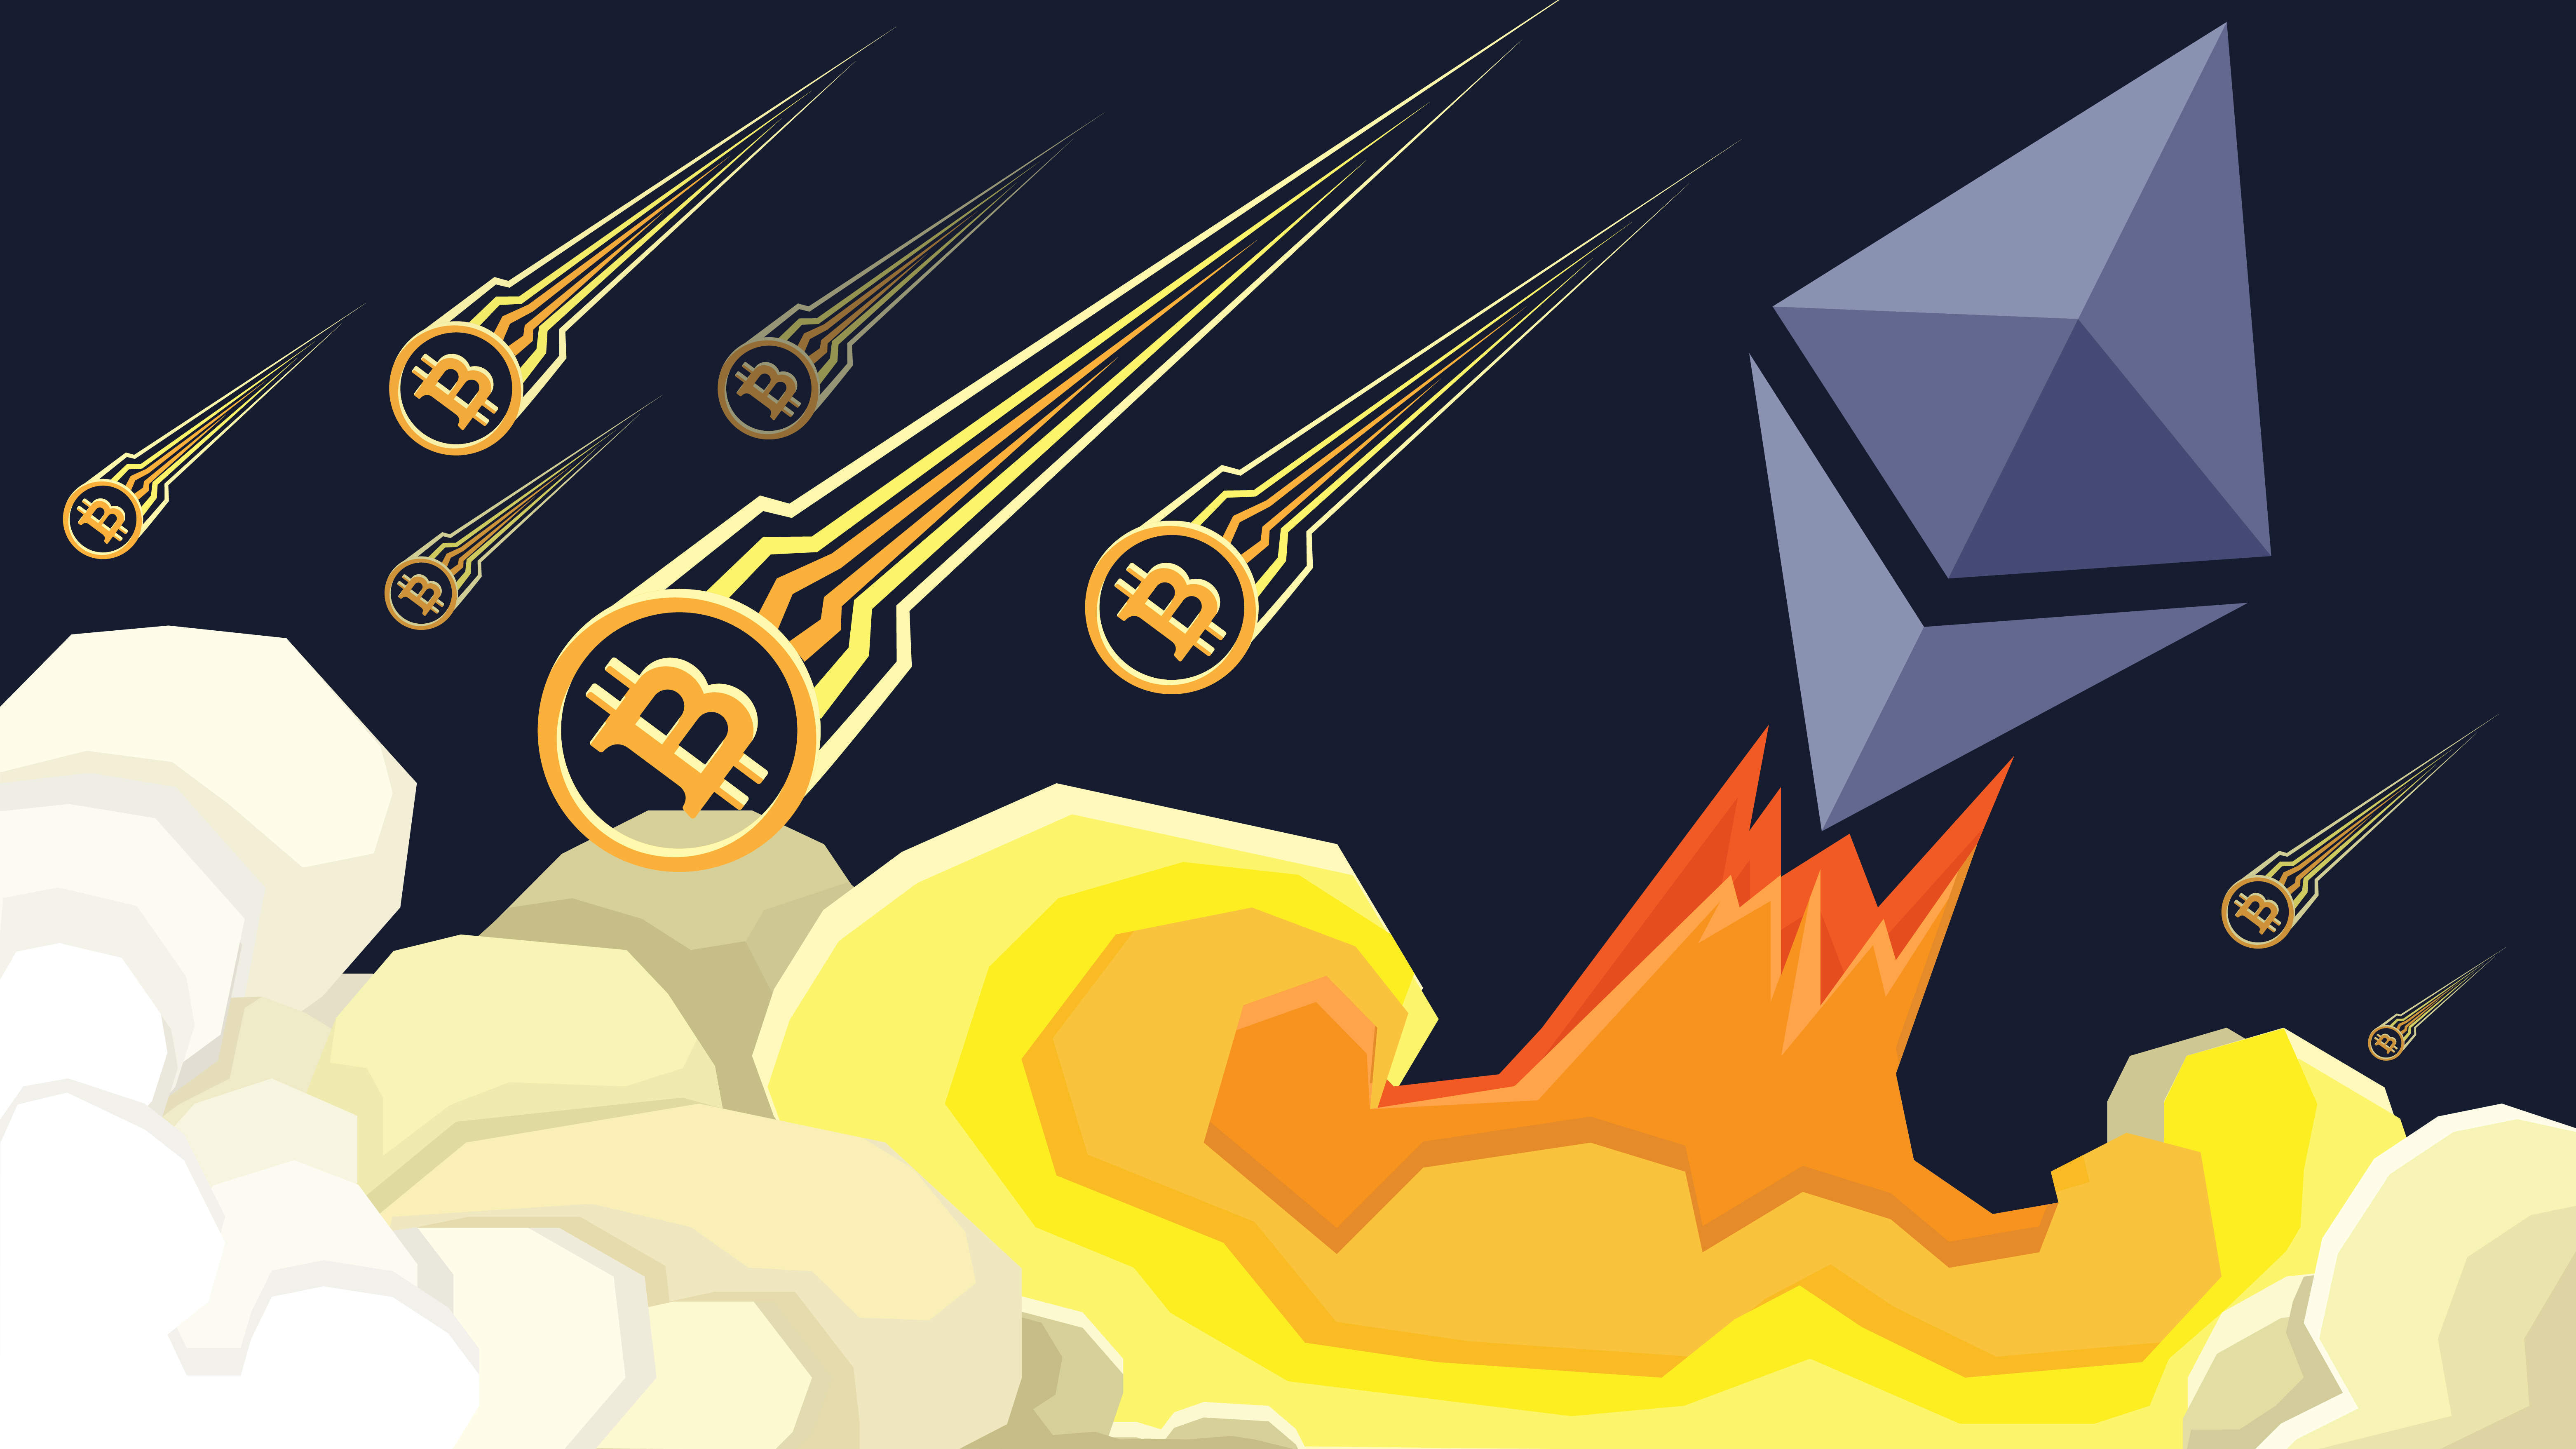 Move over bitcoin: Ethereum has smashed through the $200 mark